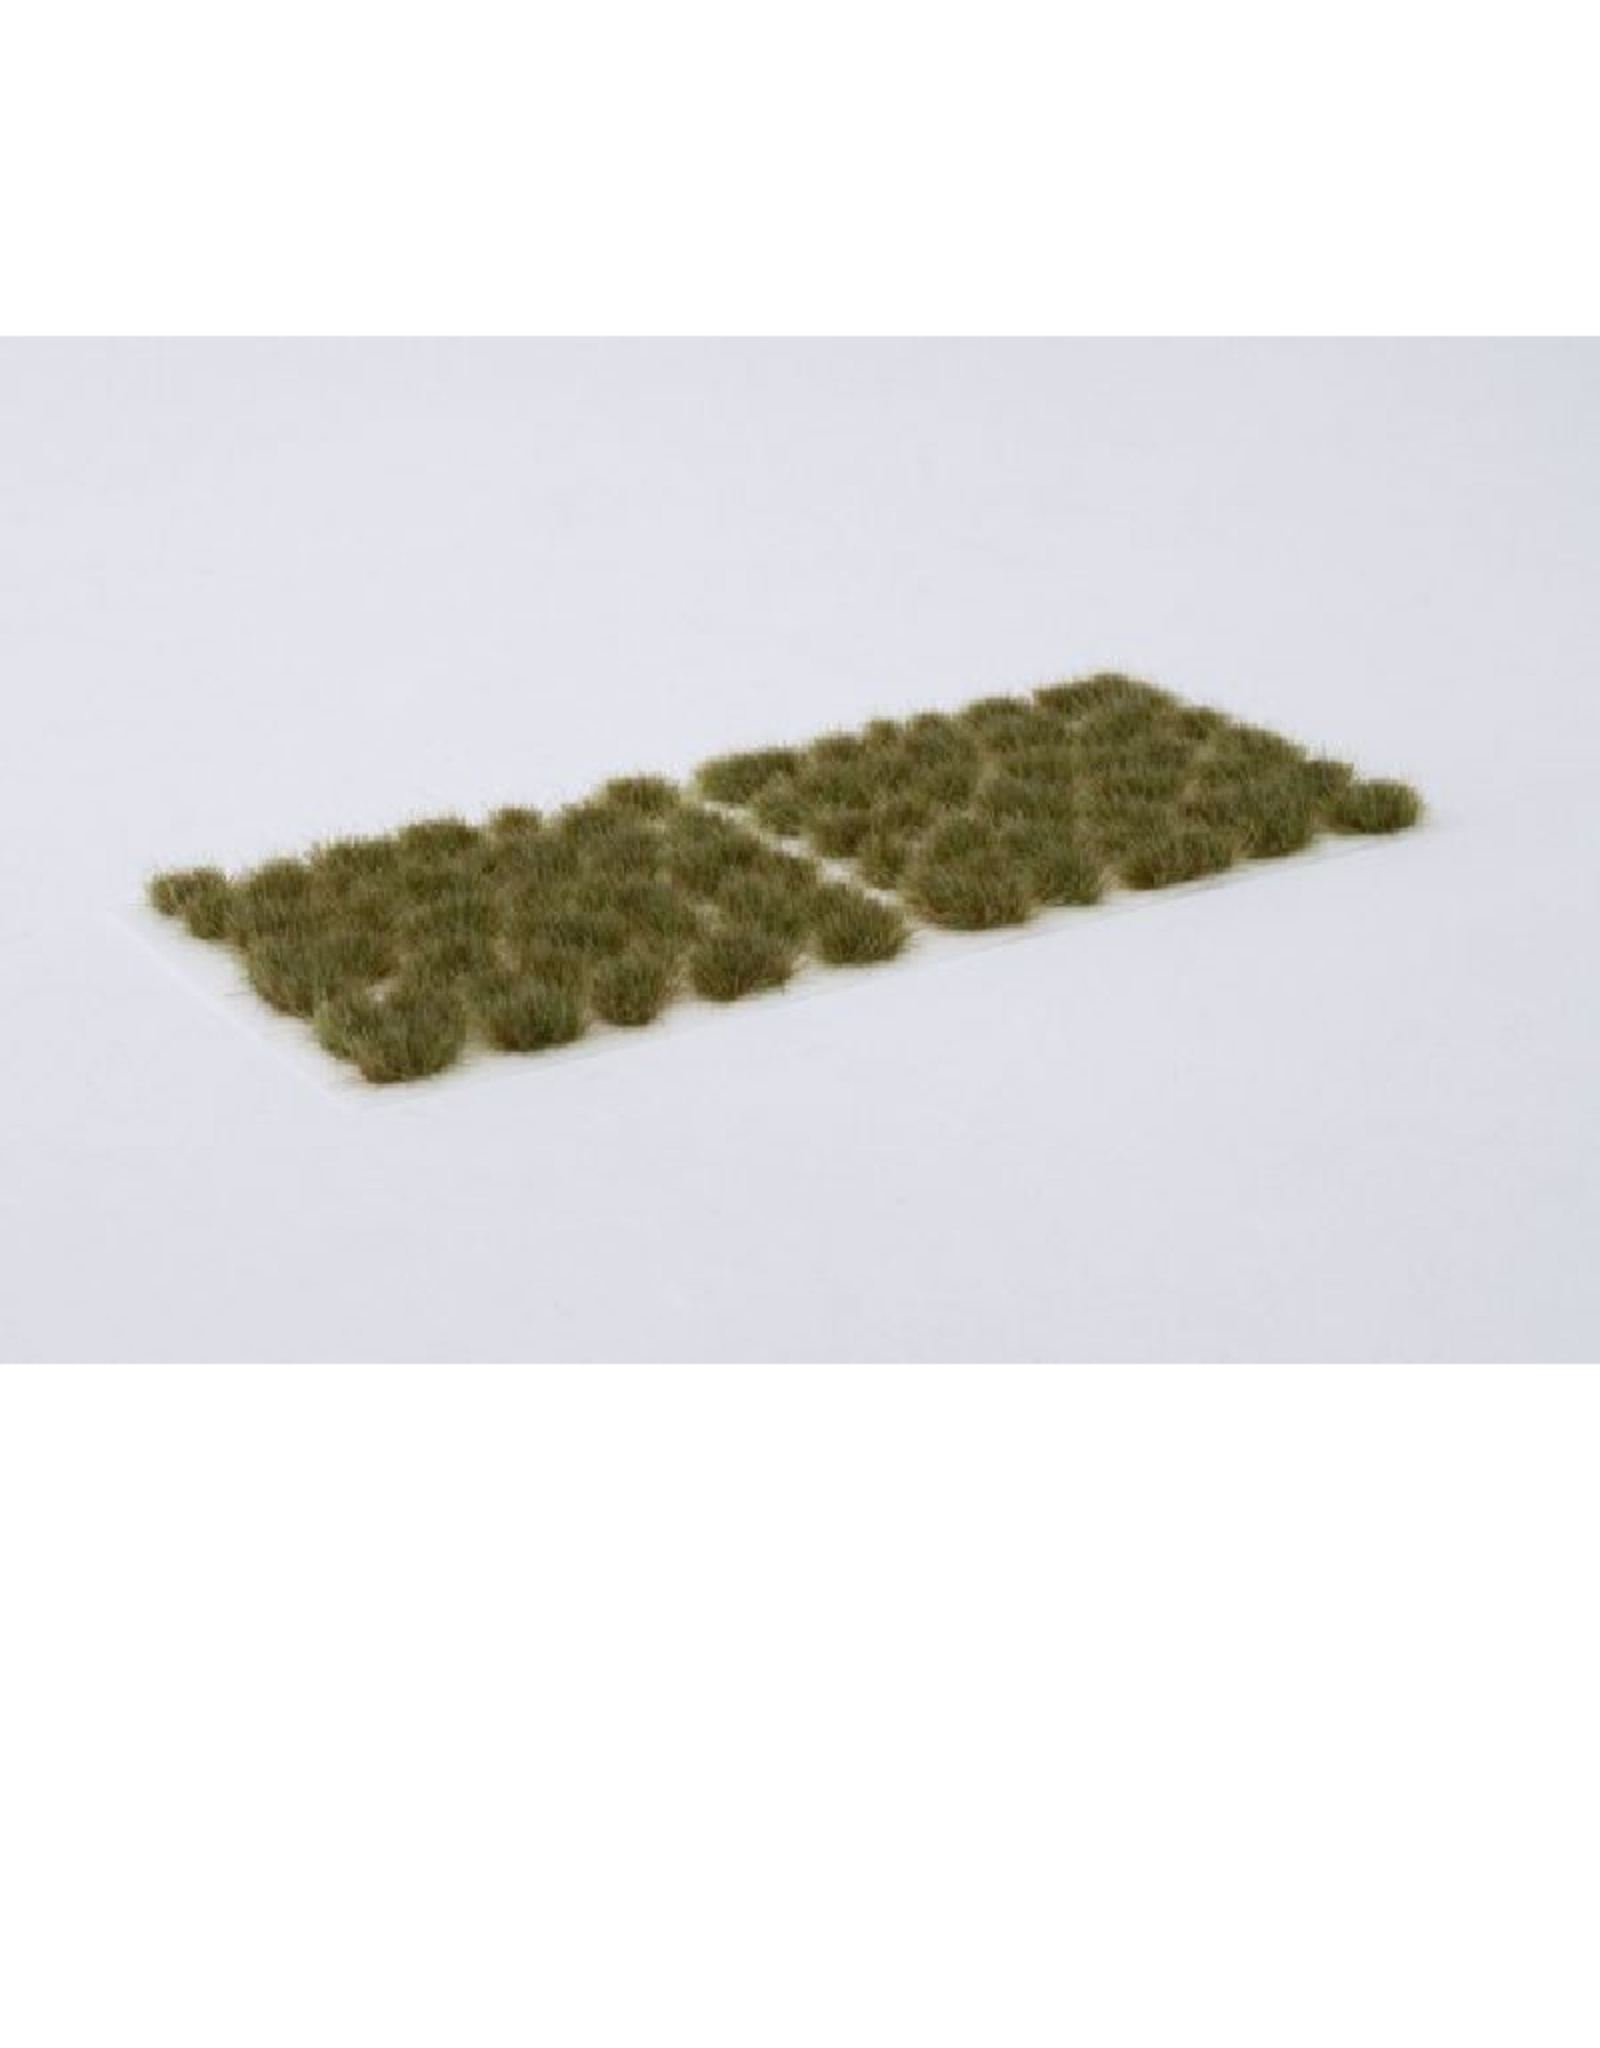 Gamers' Grass Mixed Green Tufts (6mm)